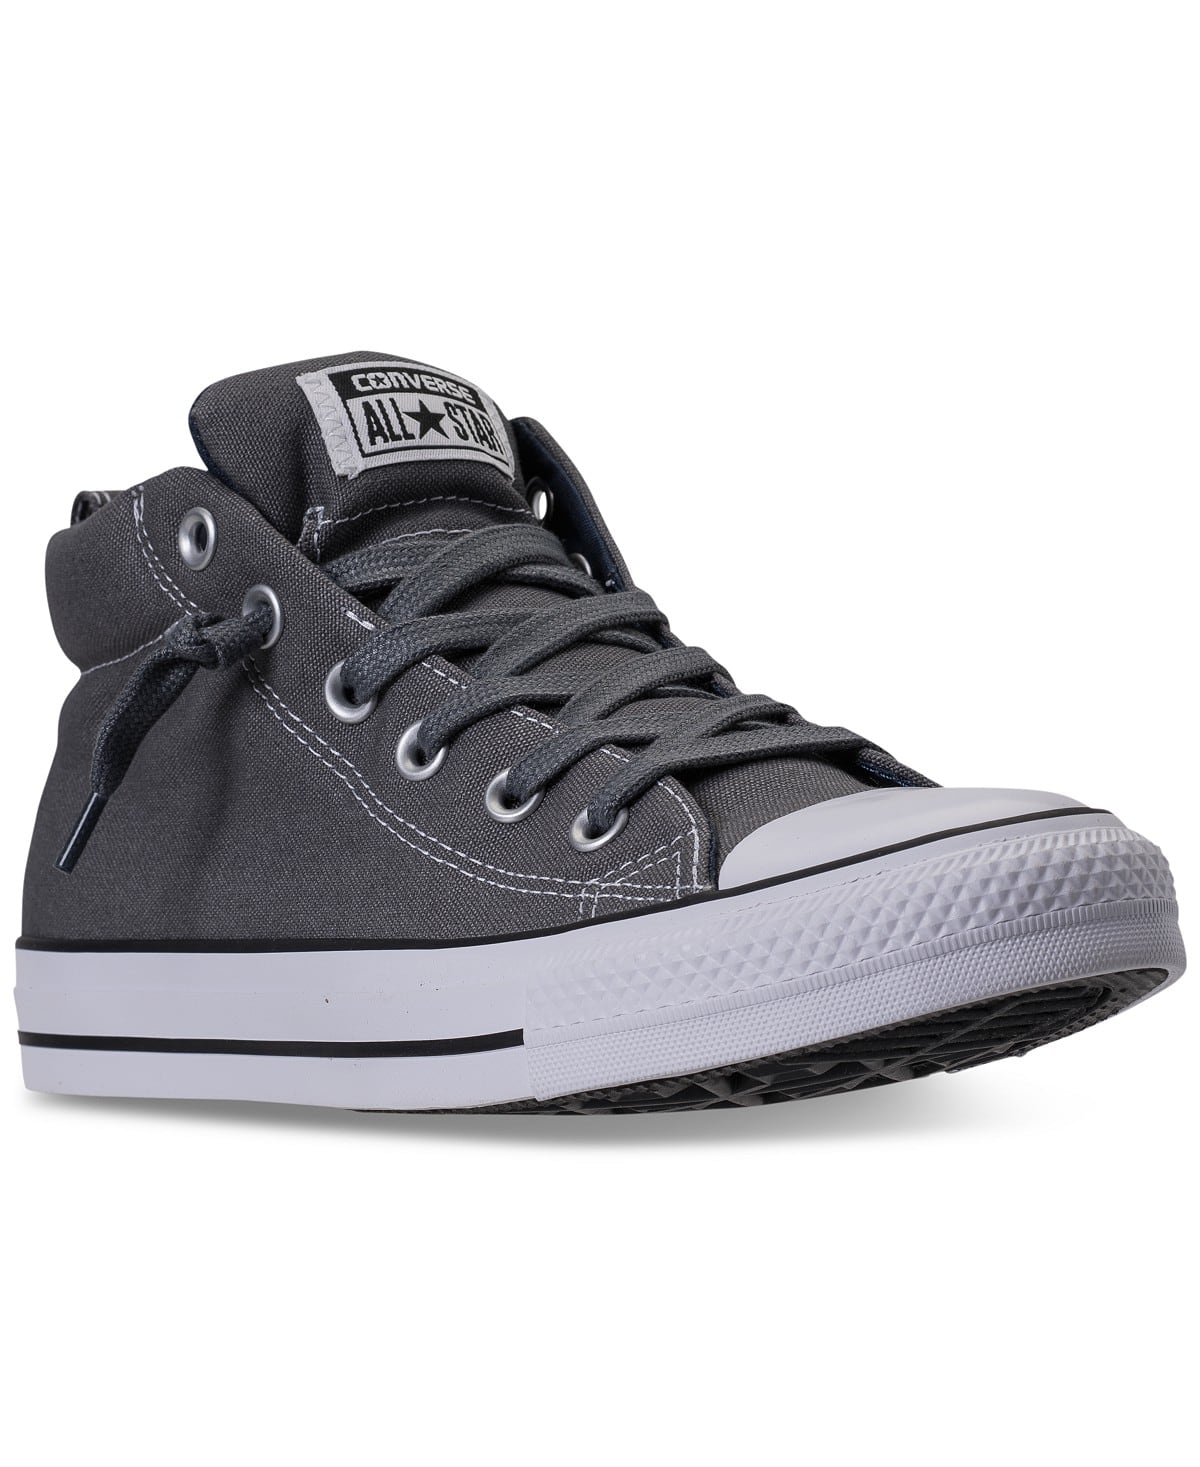 Converse Men s Chuck Taylor All Star Street Mid Casual Sneakers from Finish  Line  35 2493b0c9e